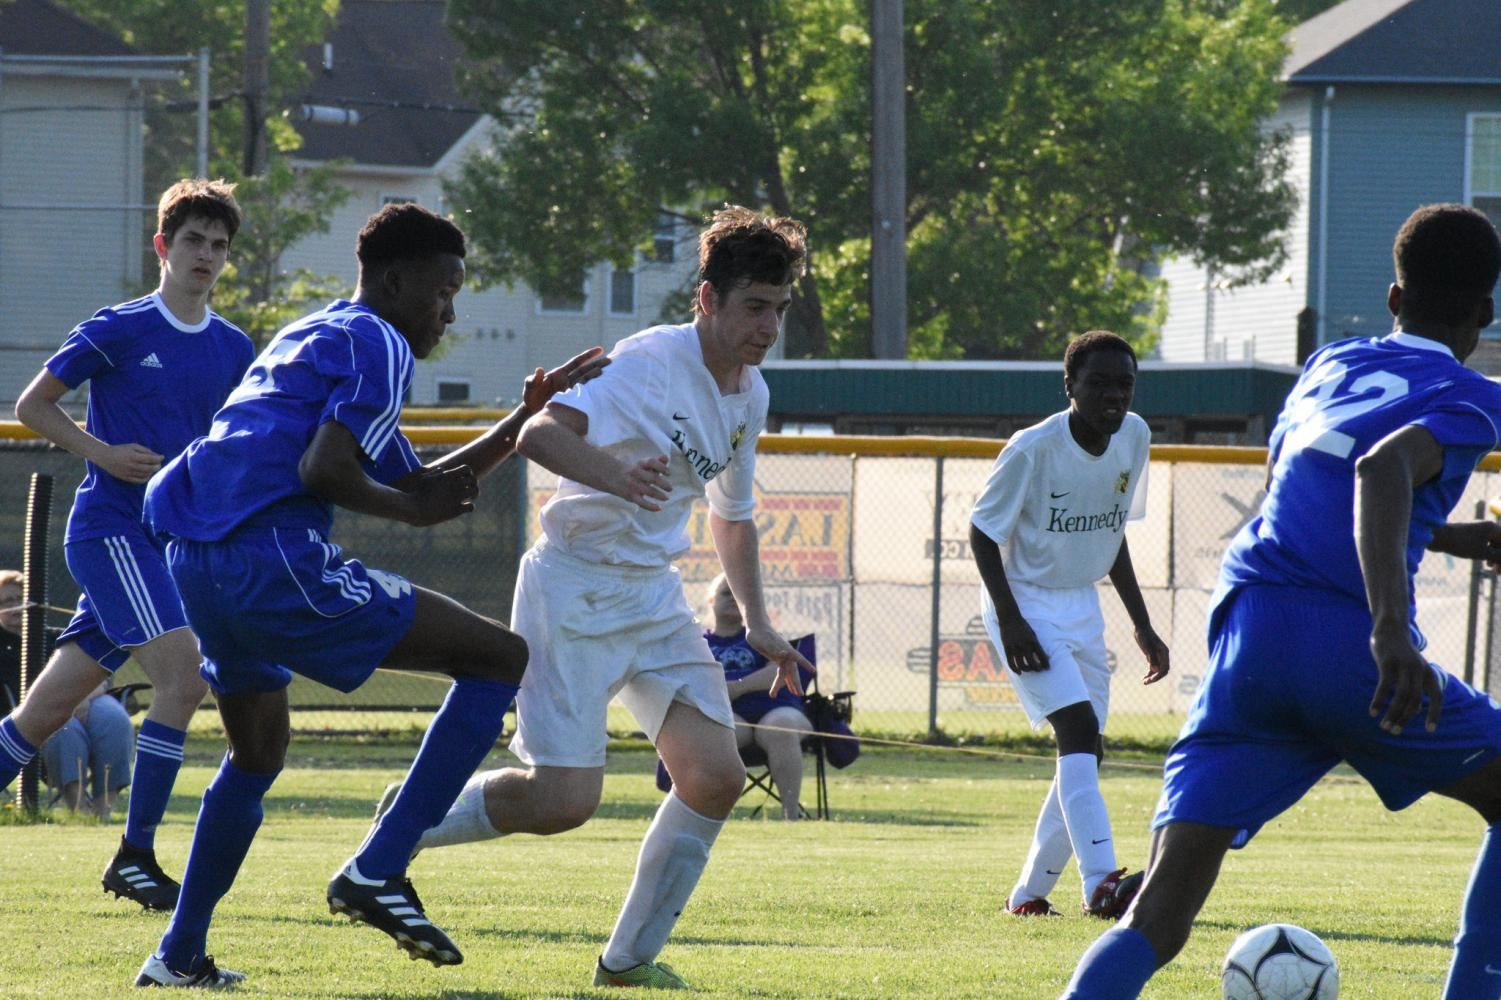 Conrado Chozas-Martinez racing towards the ball, against Washington Warriors. The JV 2 soccer game was on May 16, losing 3-2.